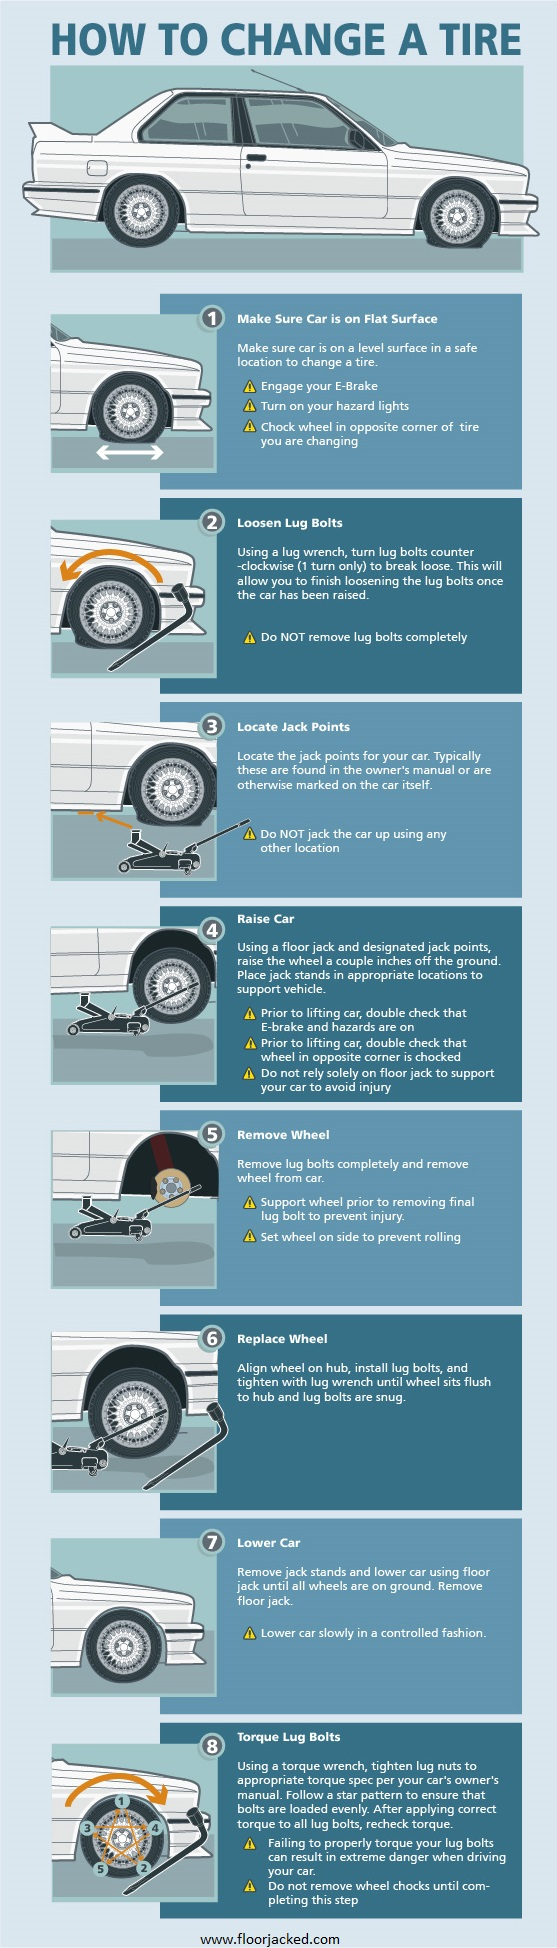 Infographic: How To Change a Car Tire